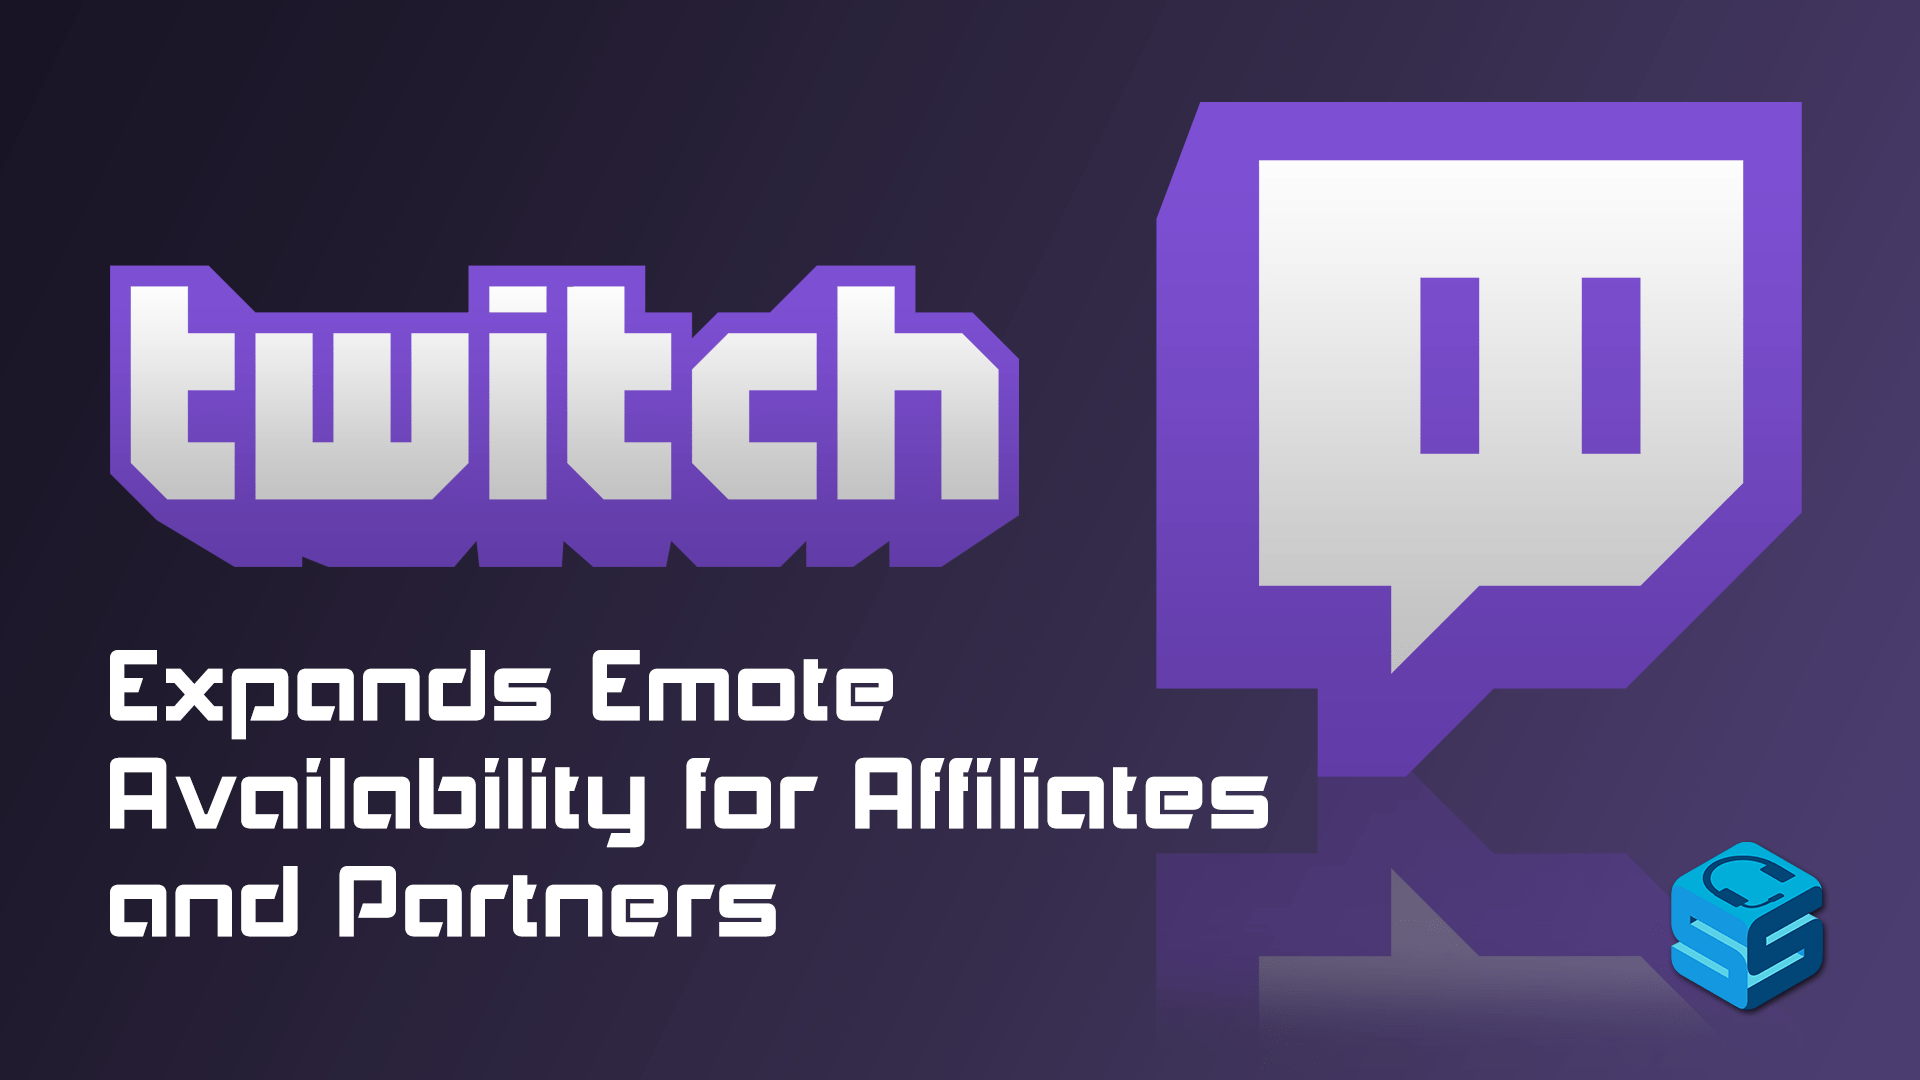 Twitch Expands Emote Availability for Affiliates and